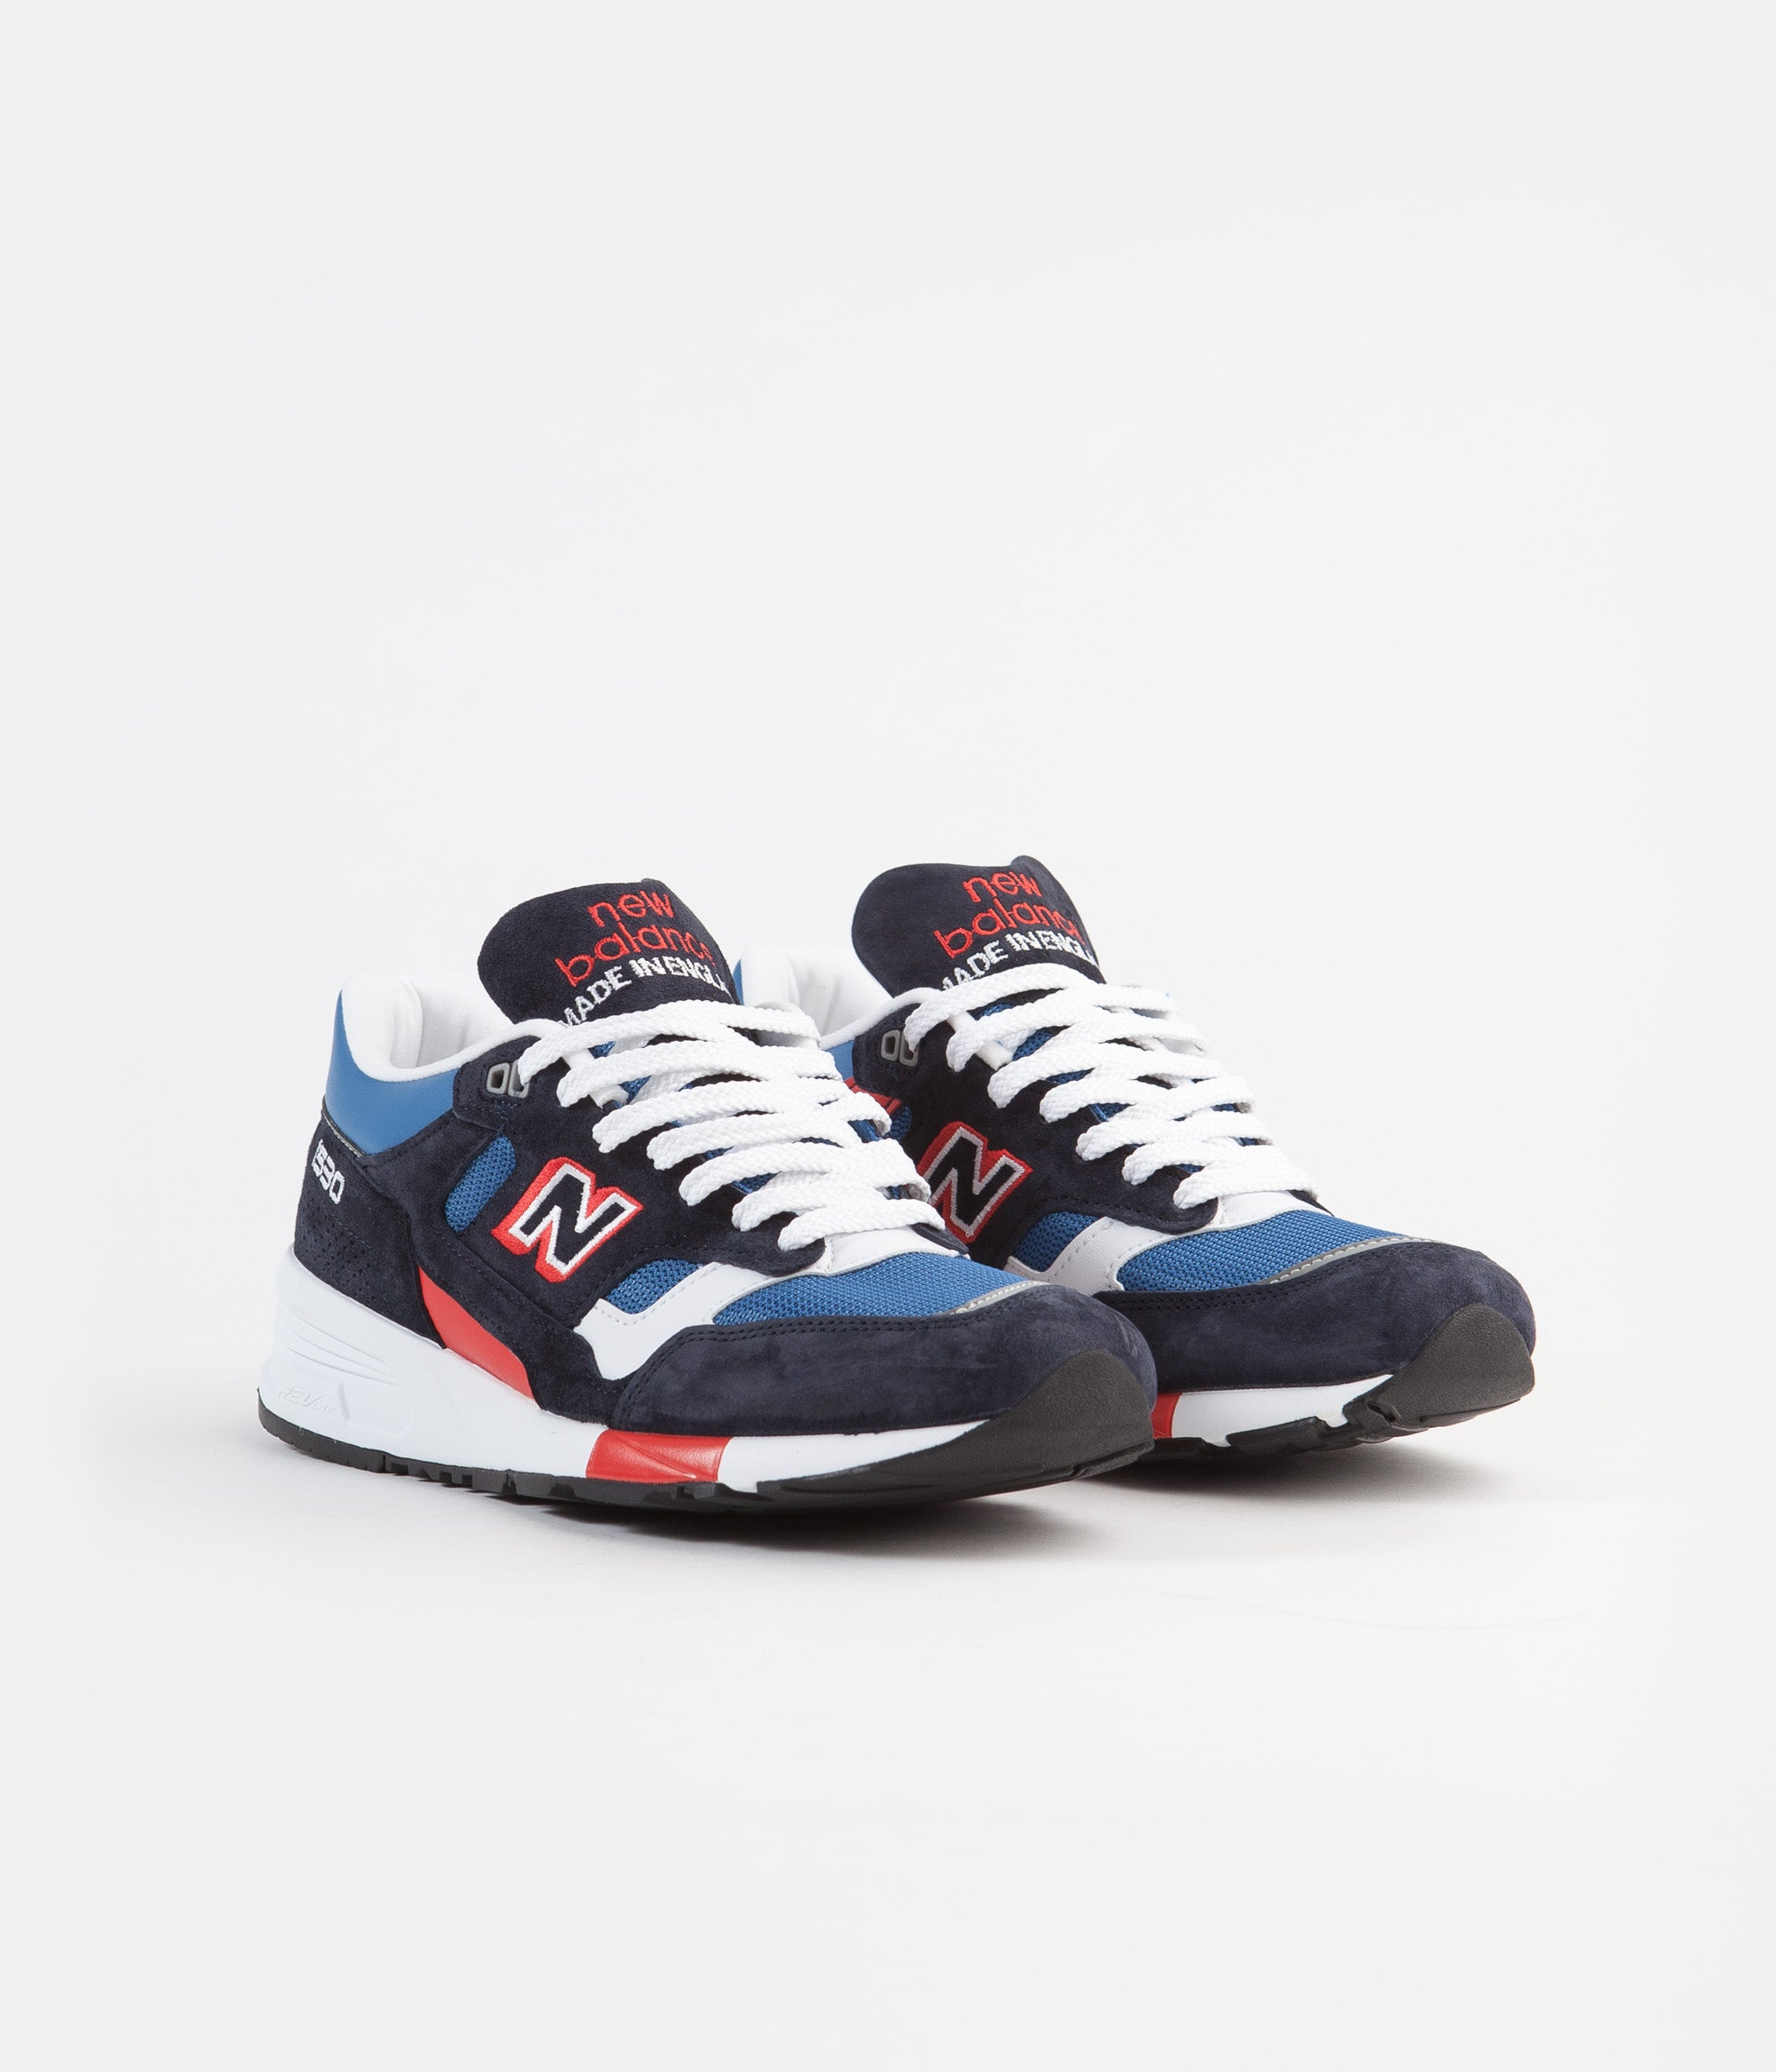 New Balance 1530 Made in UK Shoes